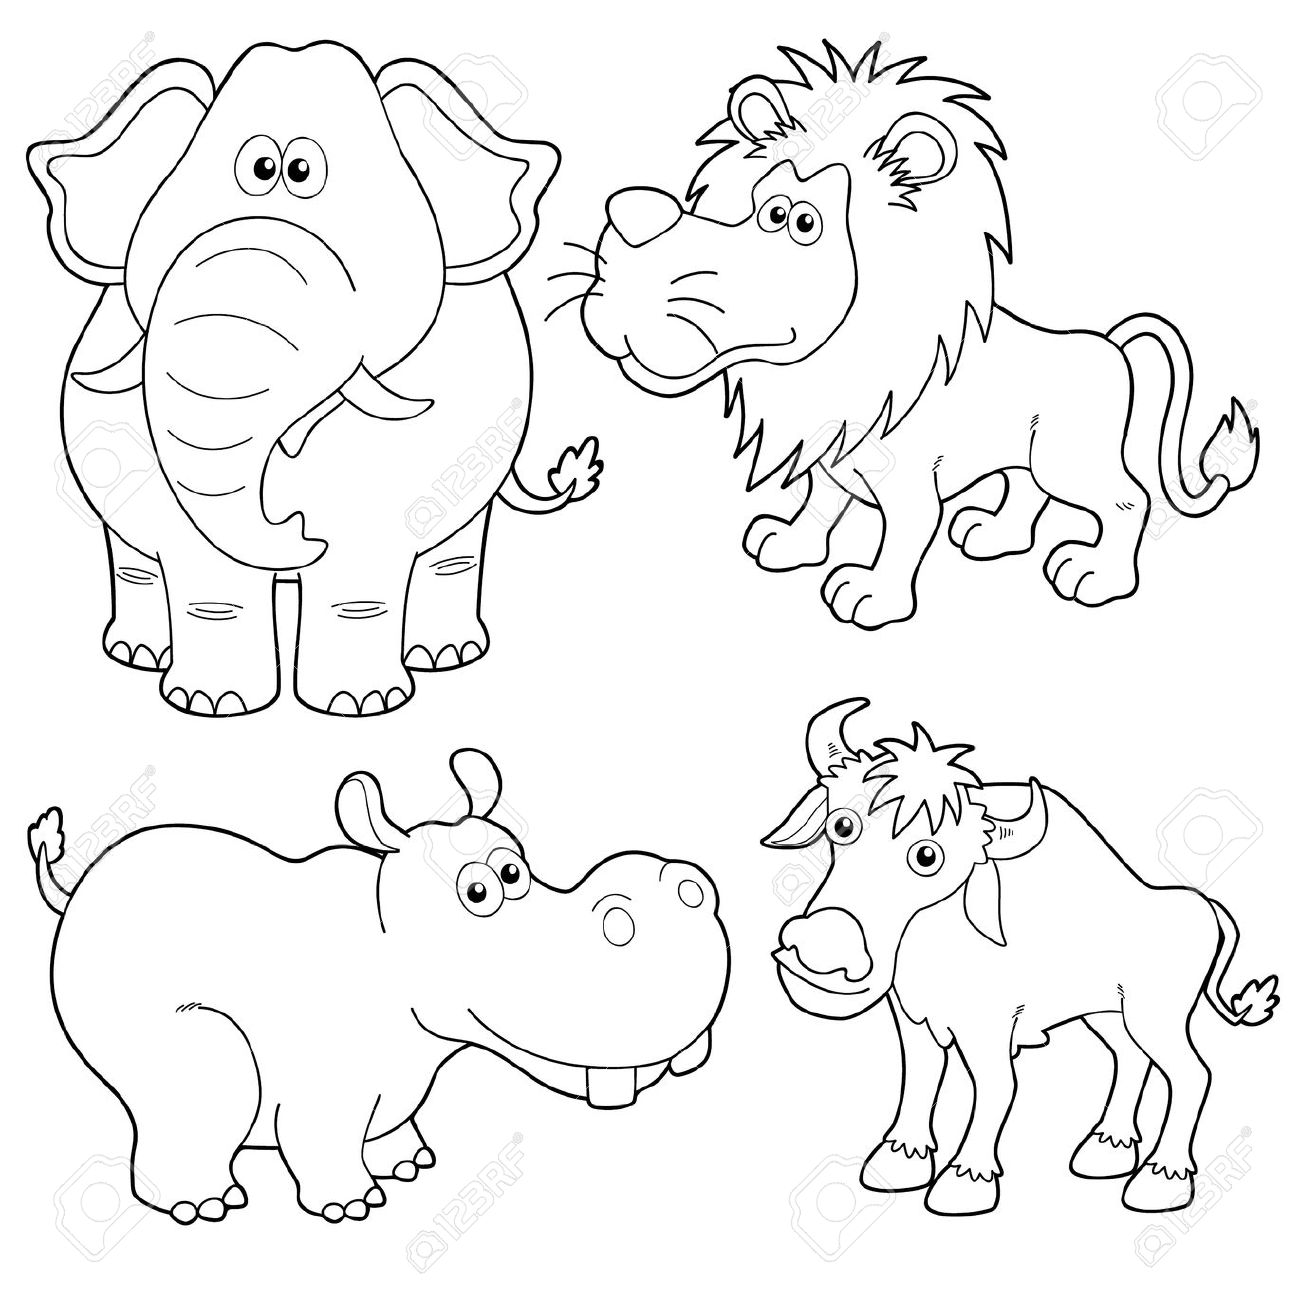 Line Drawings Of Woodland Animals : Realistic animals drawing at getdrawings free for